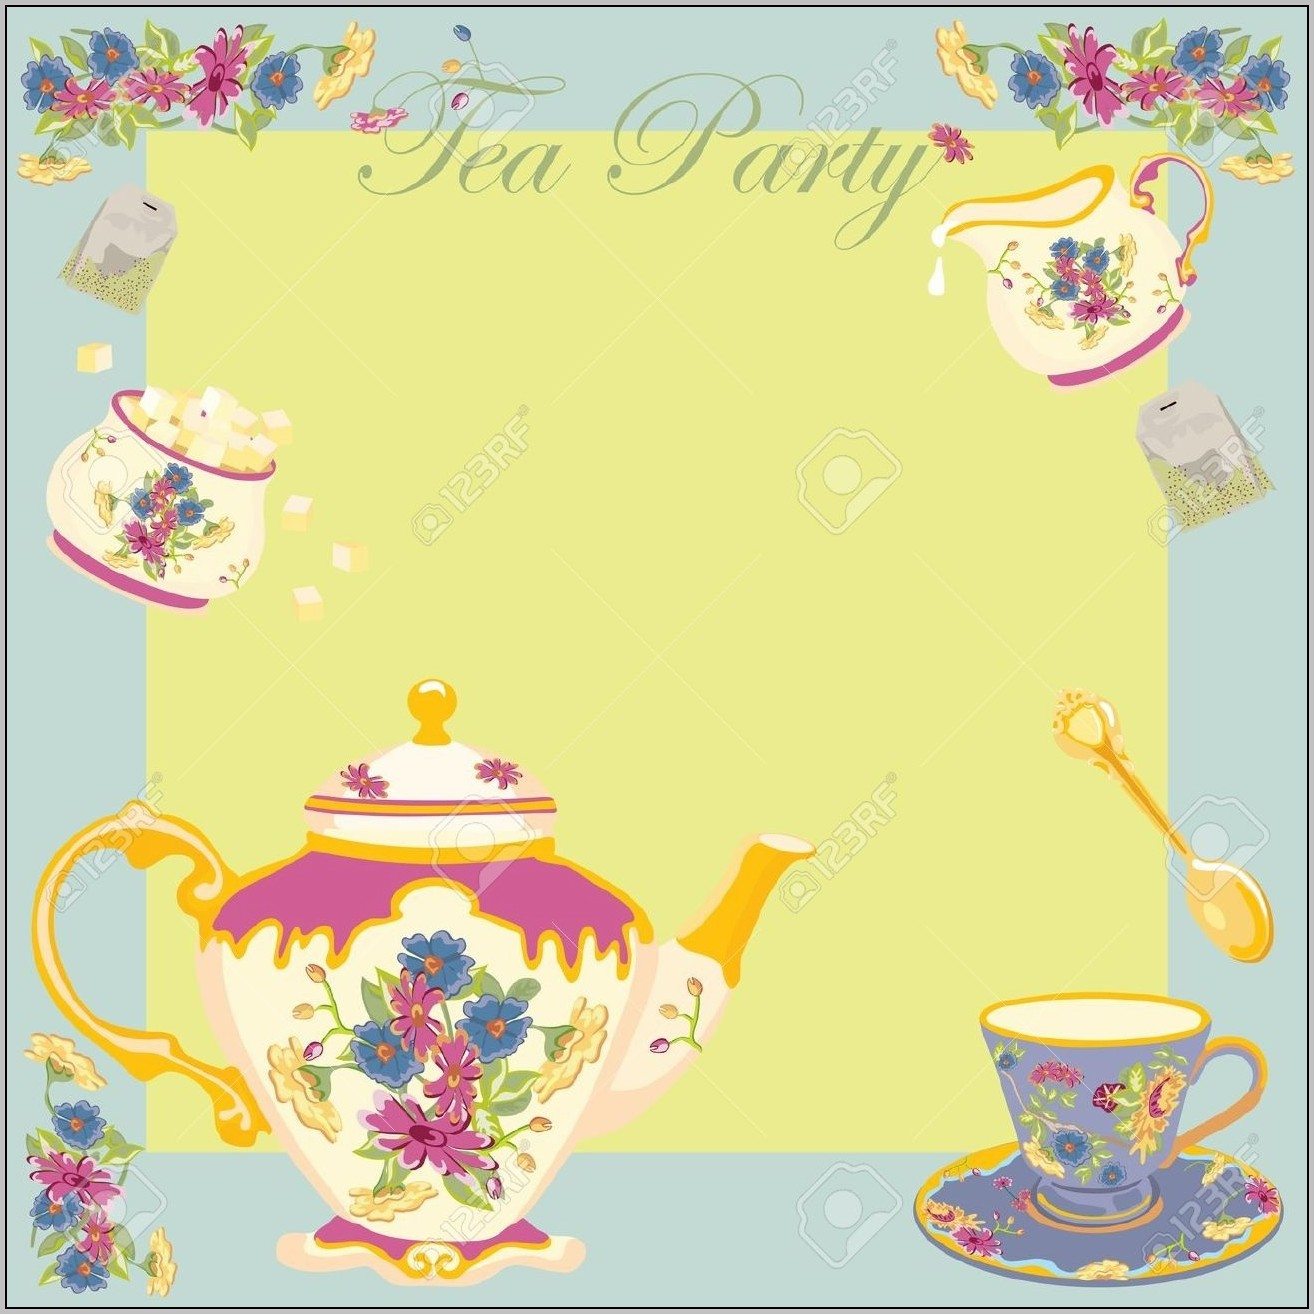 Vintage Tea Party Invitation Templates Free